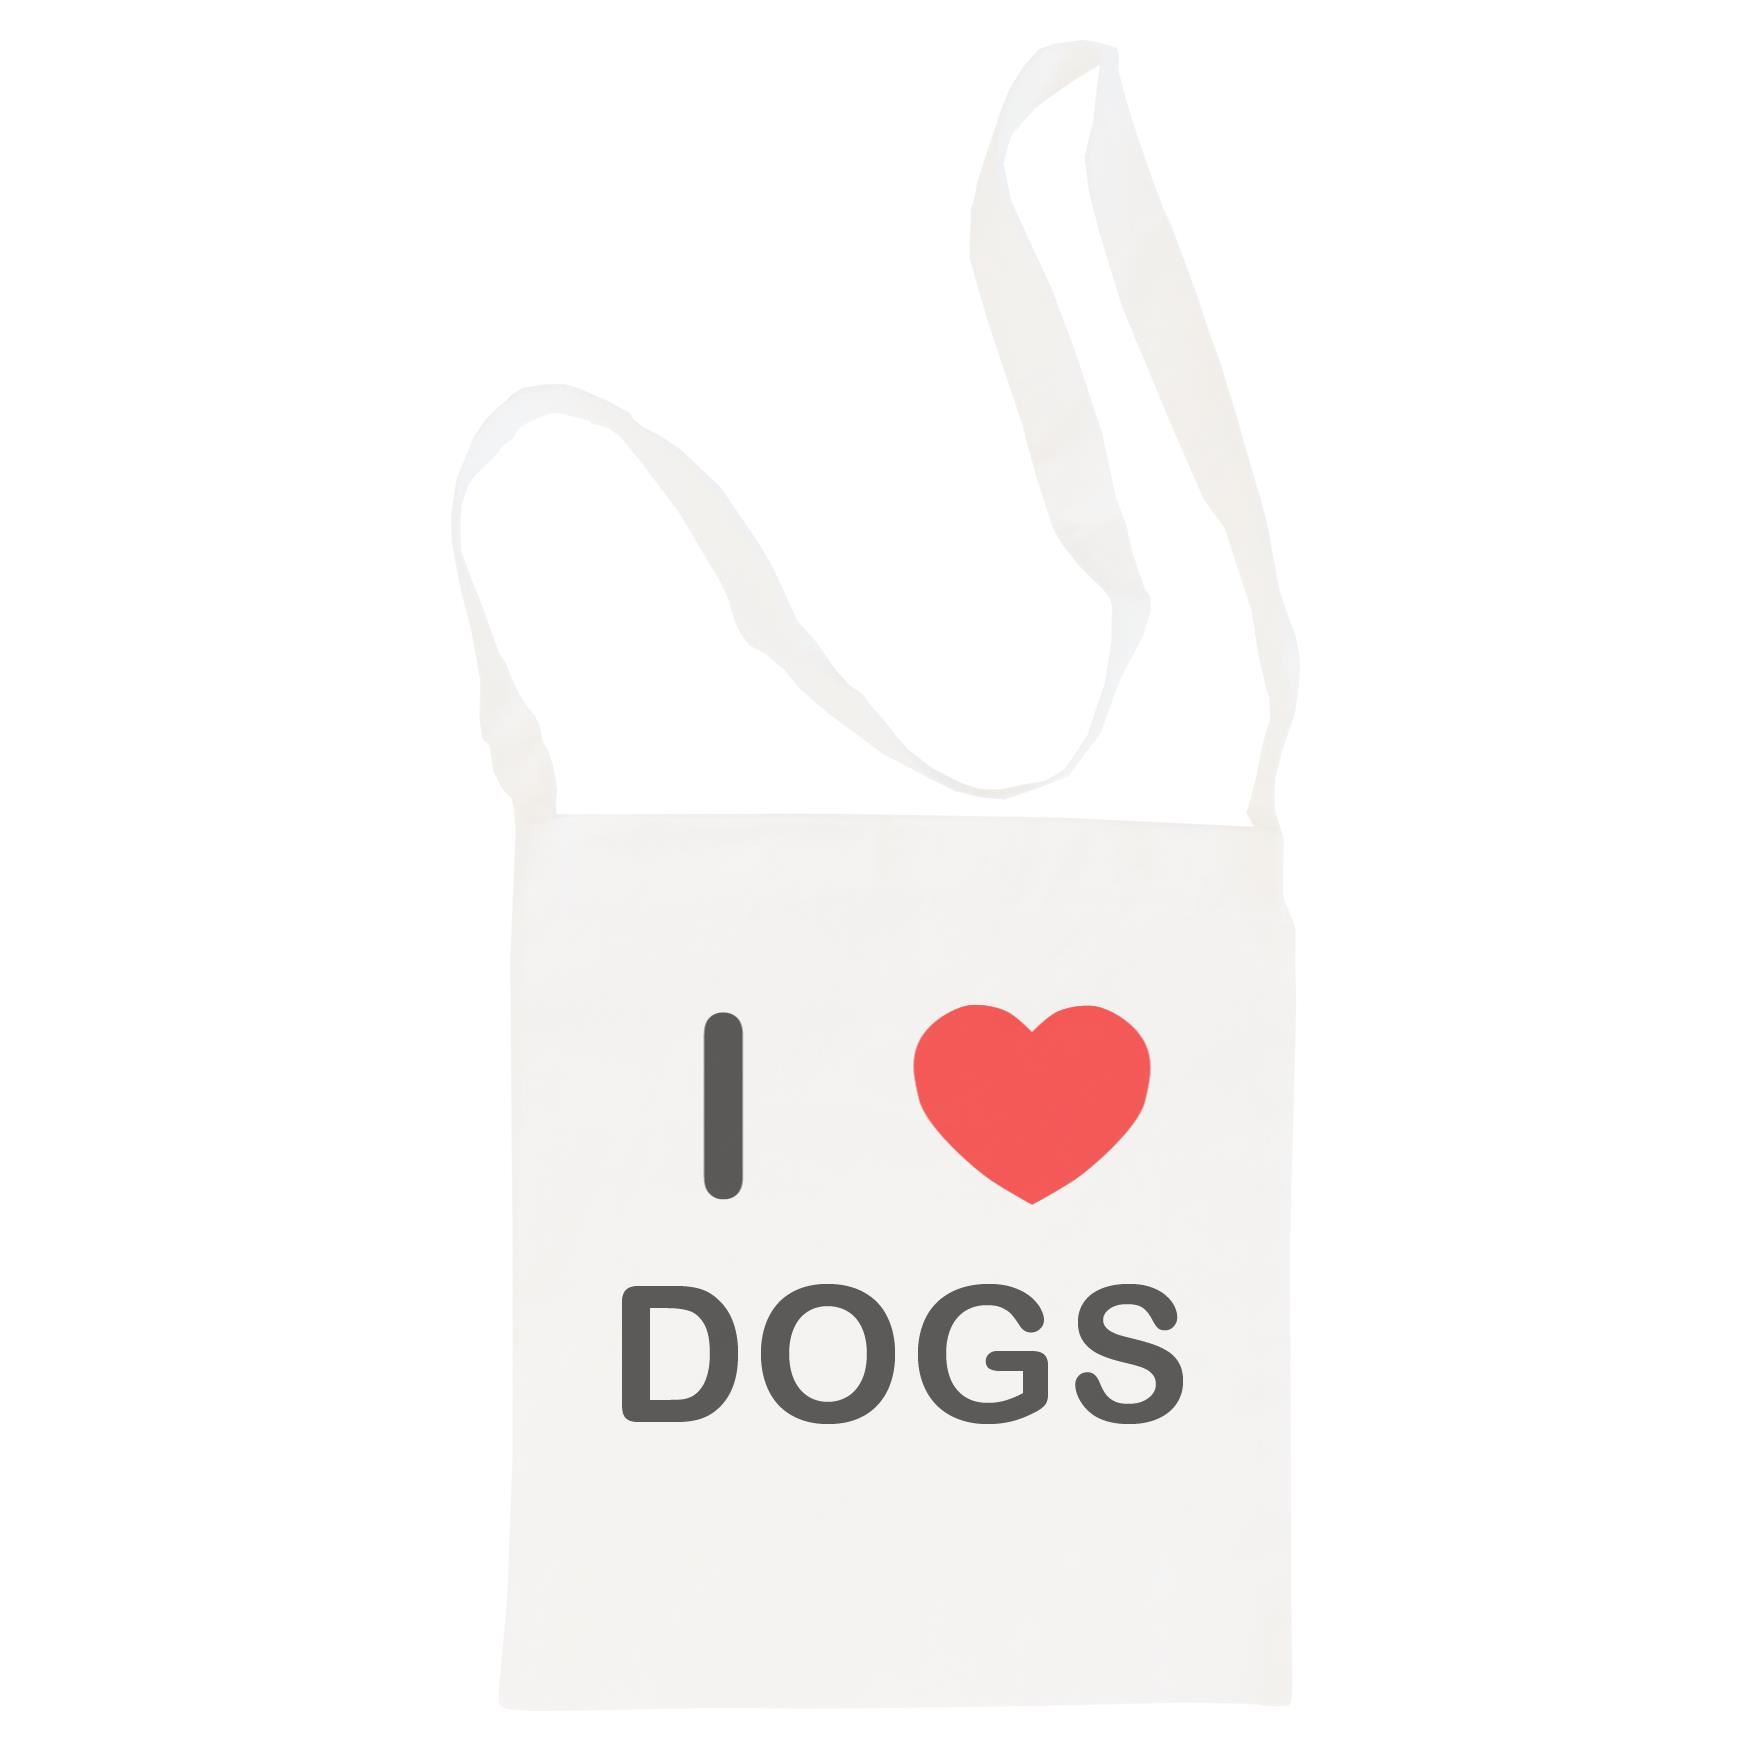 I Love Dogs - Cotton Bag | Size choice Tote, Shopper or Sling